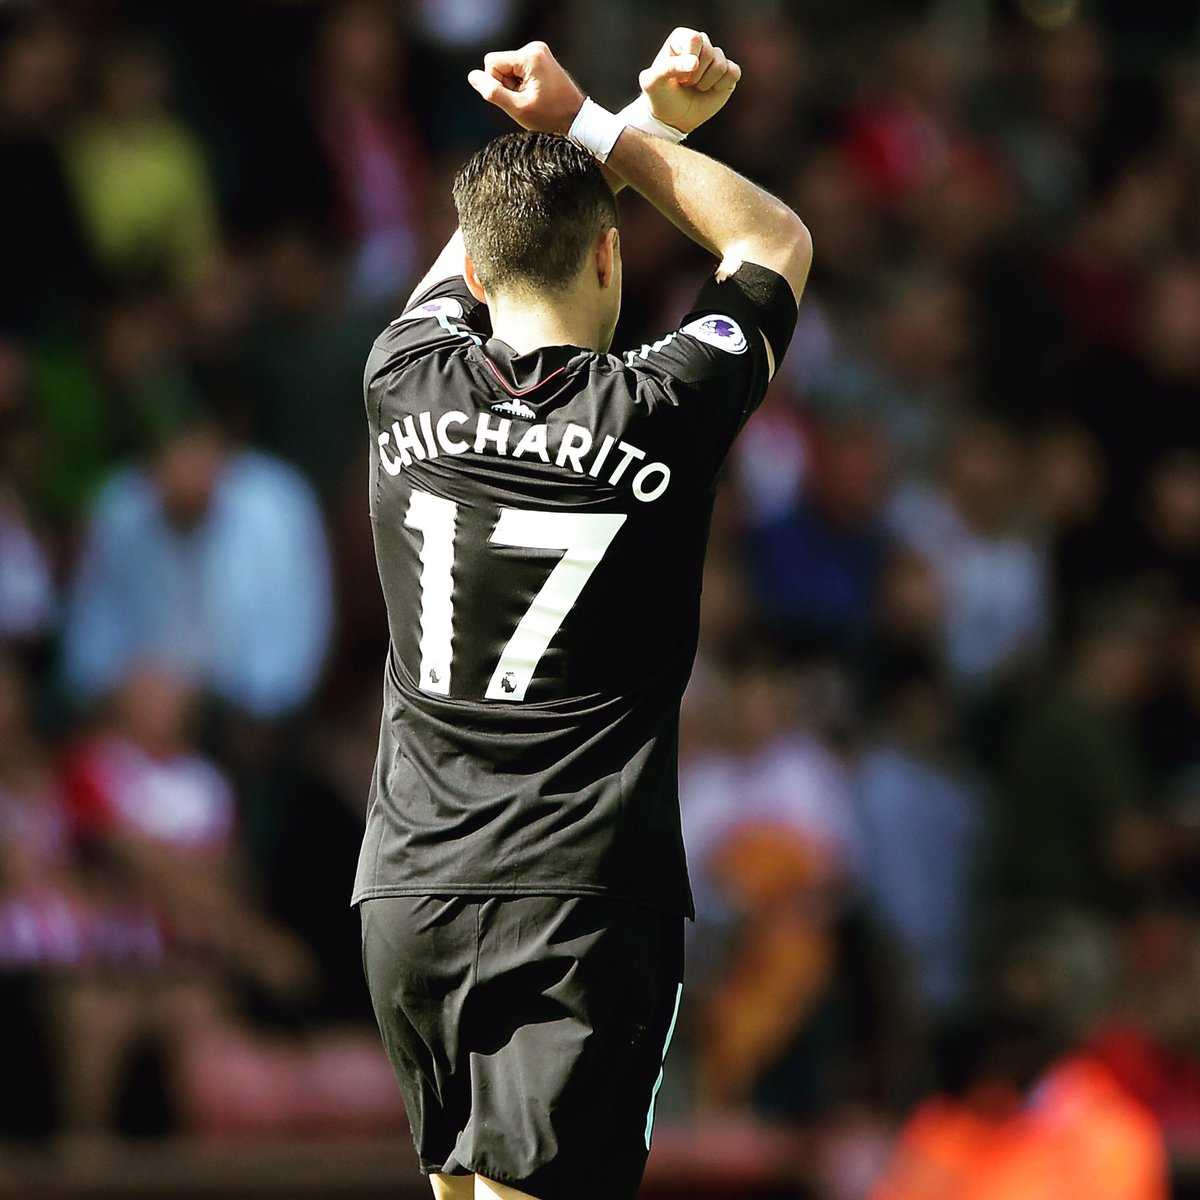 In #Chicha we trust  <br>http://pic.twitter.com/uGtfBs35rS